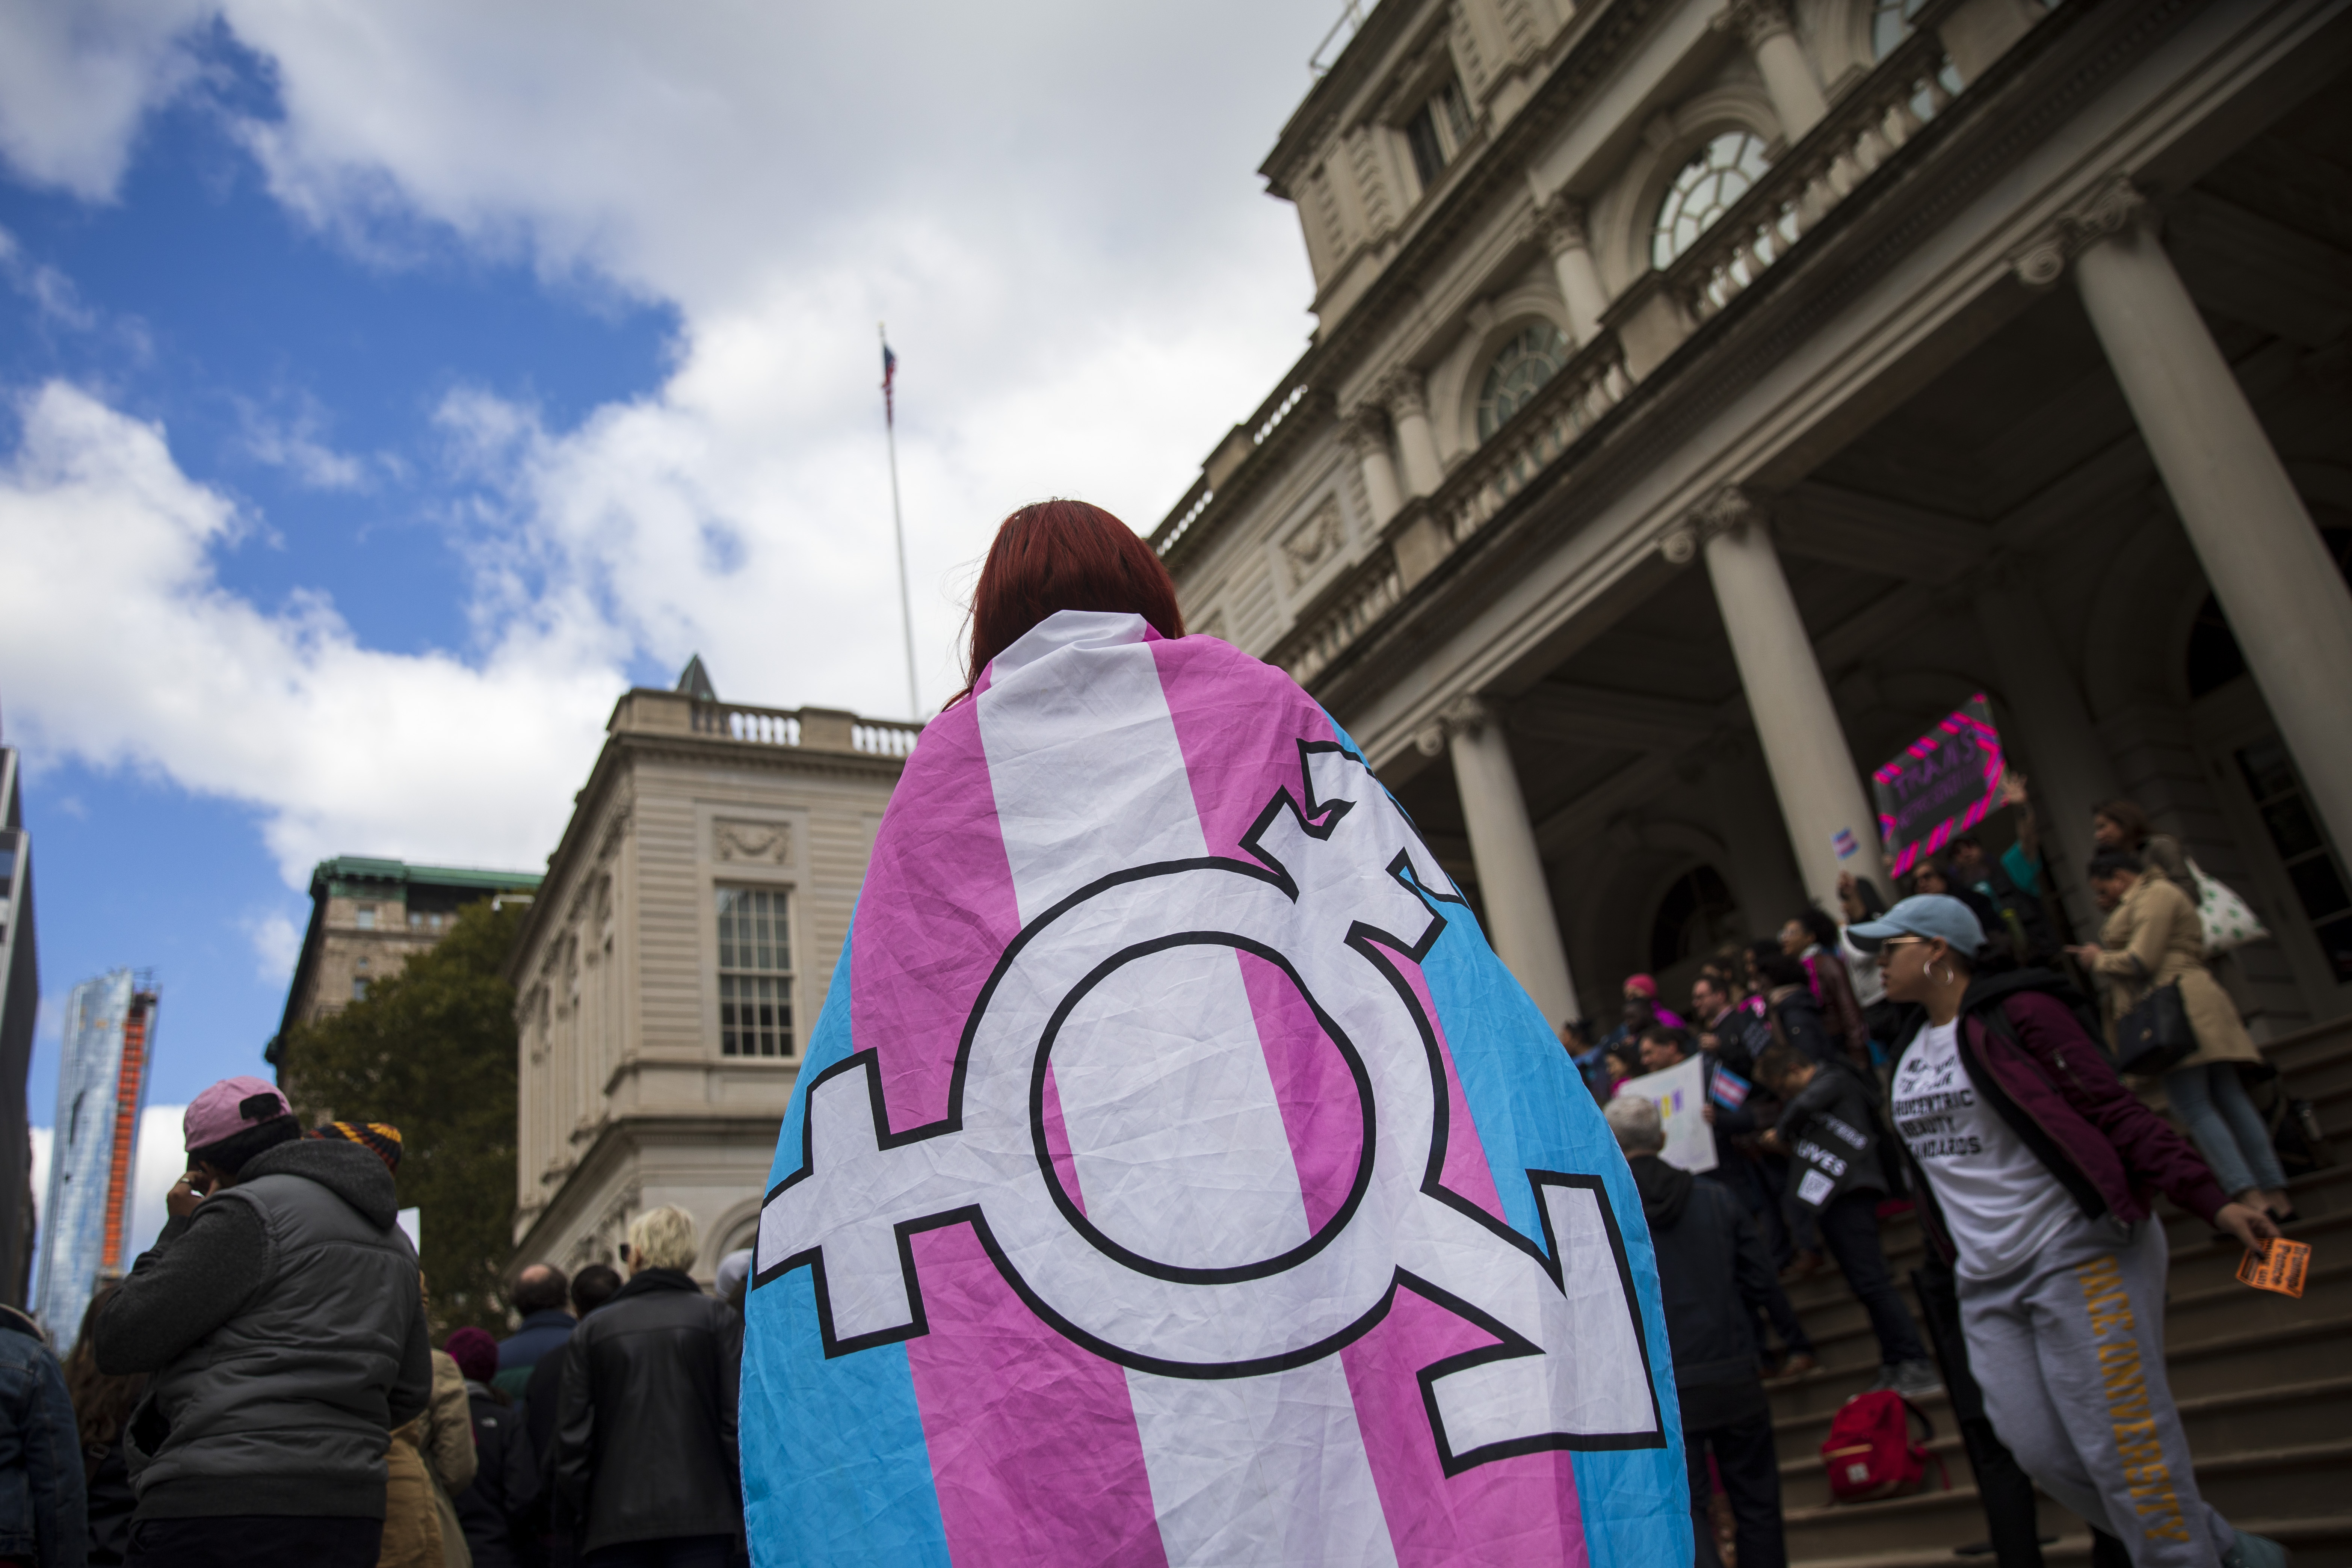 L.G.B.T. activists and their supporters rally in support of transgender people on the steps of New York City Hall, October 24, 2018 in New York City. (Getty Images)